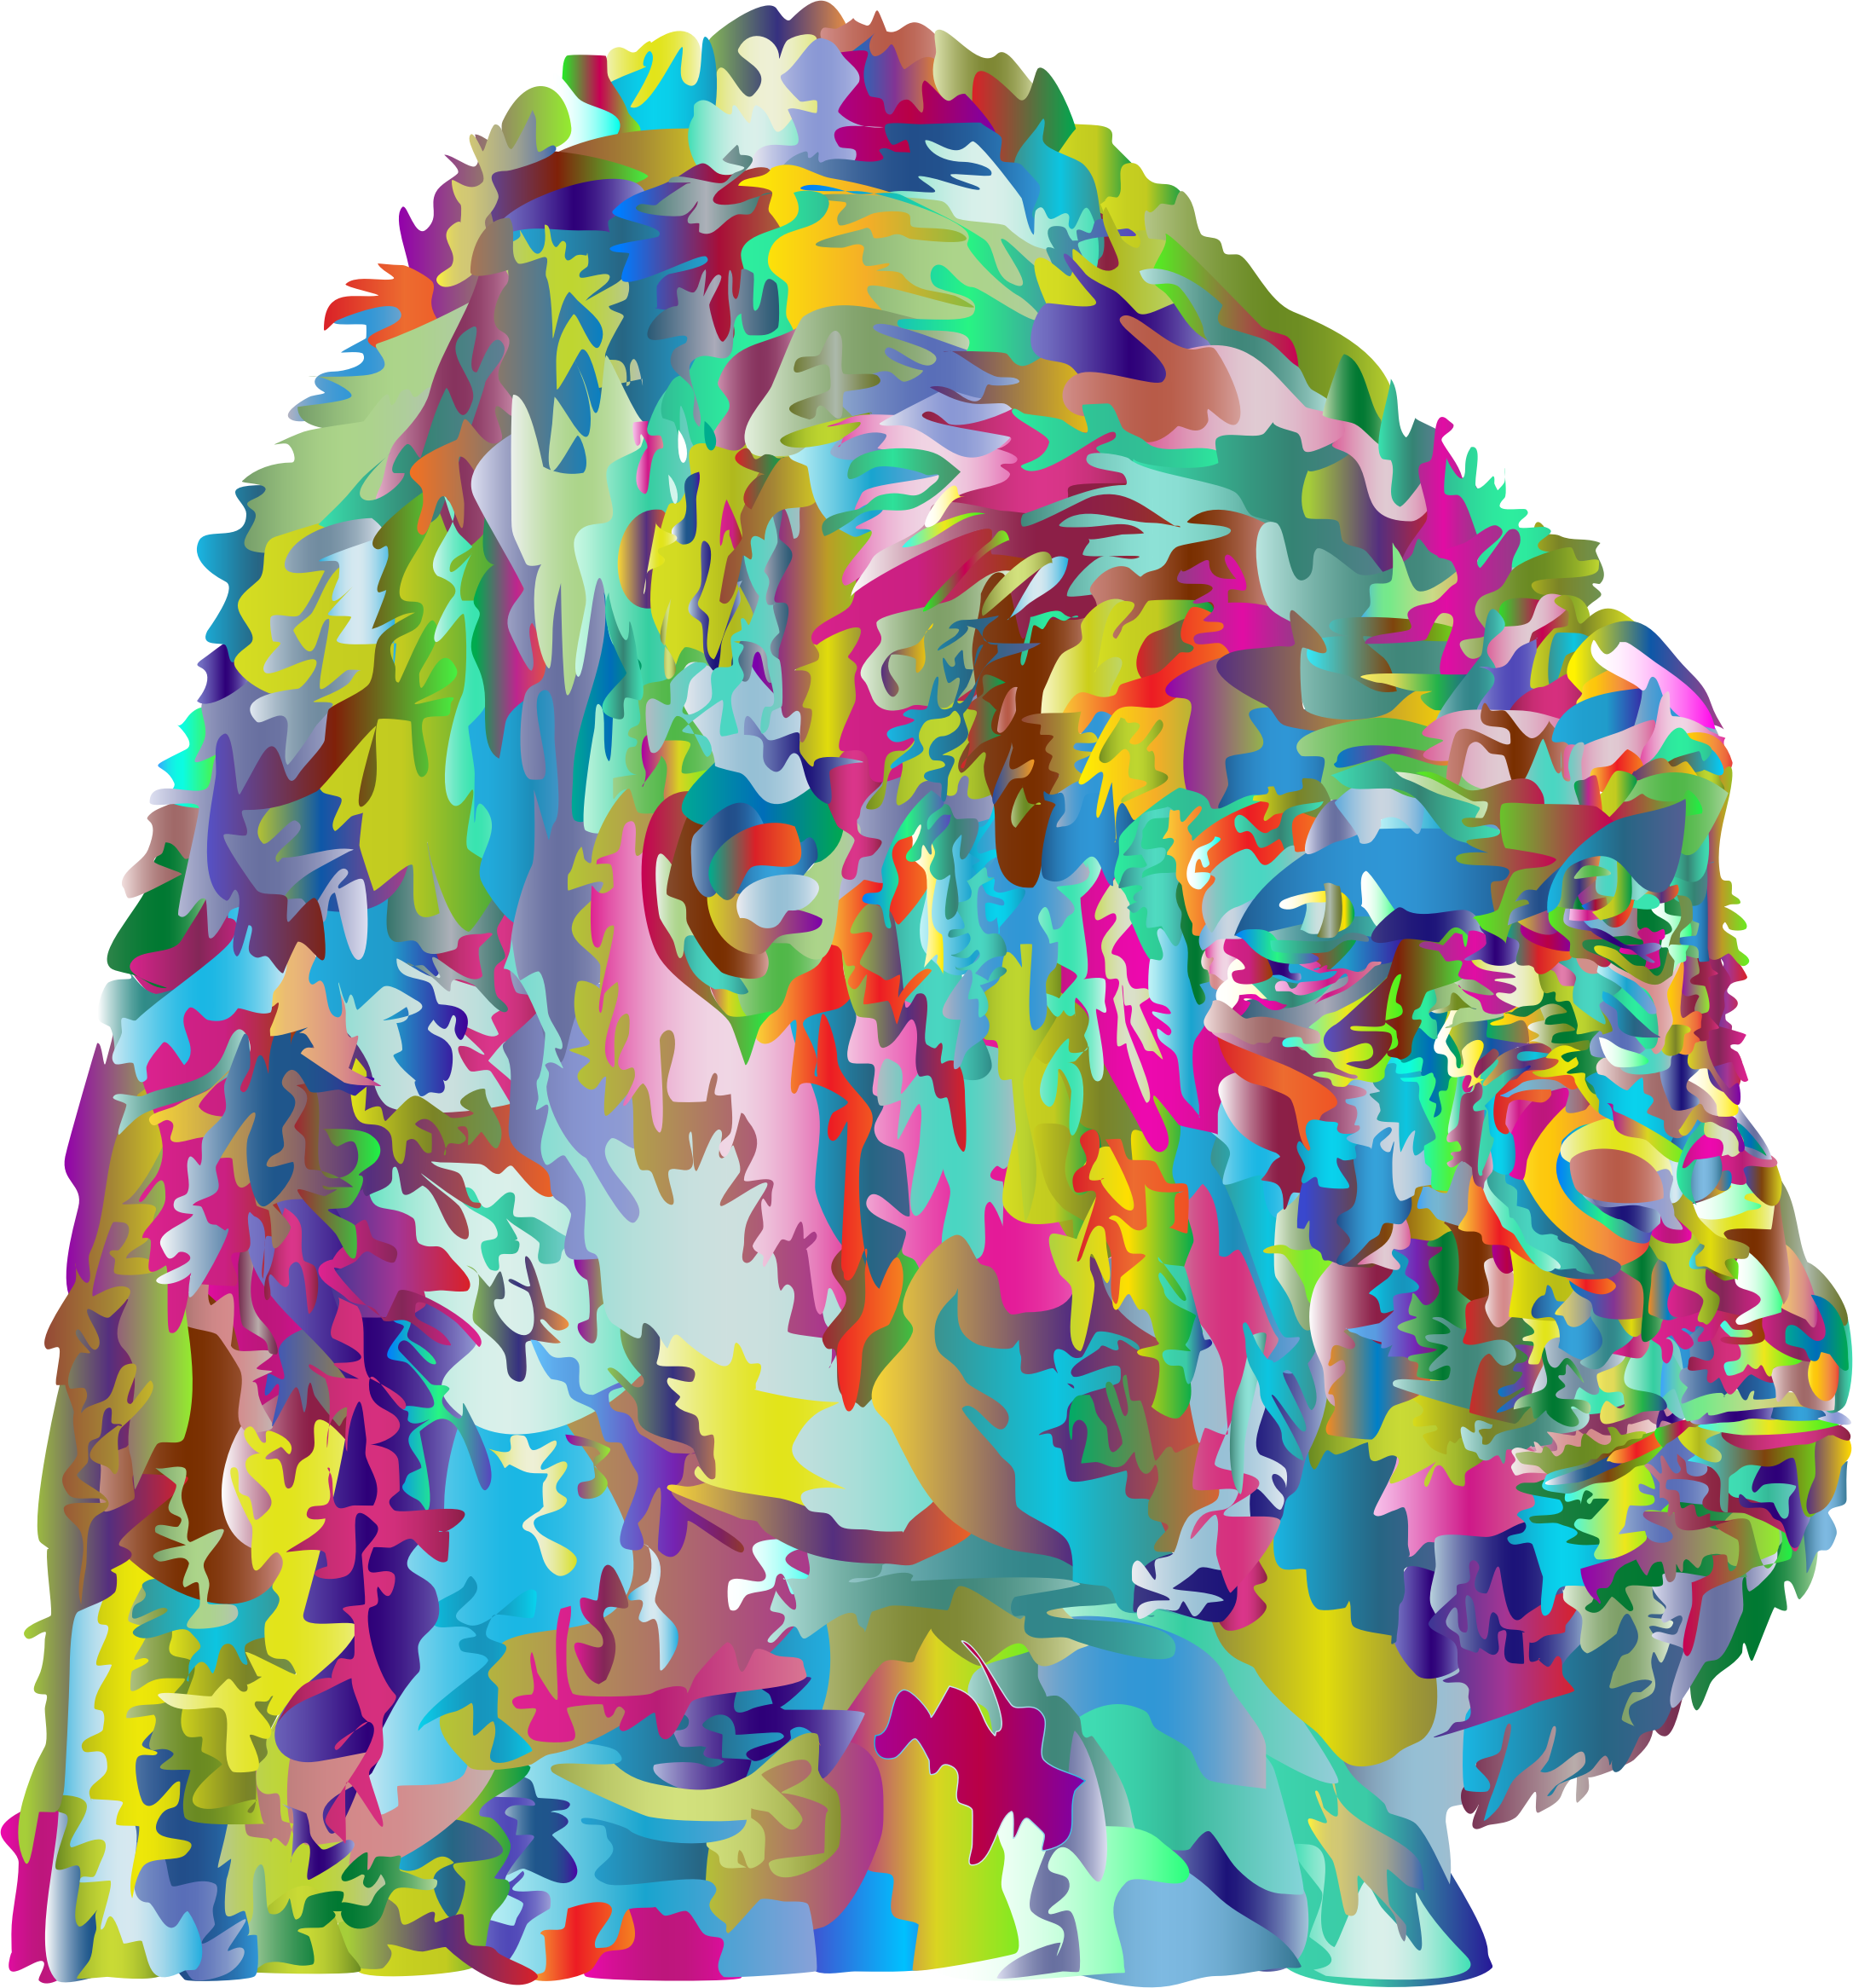 Prismatic Stylized Gorilla by GDJ